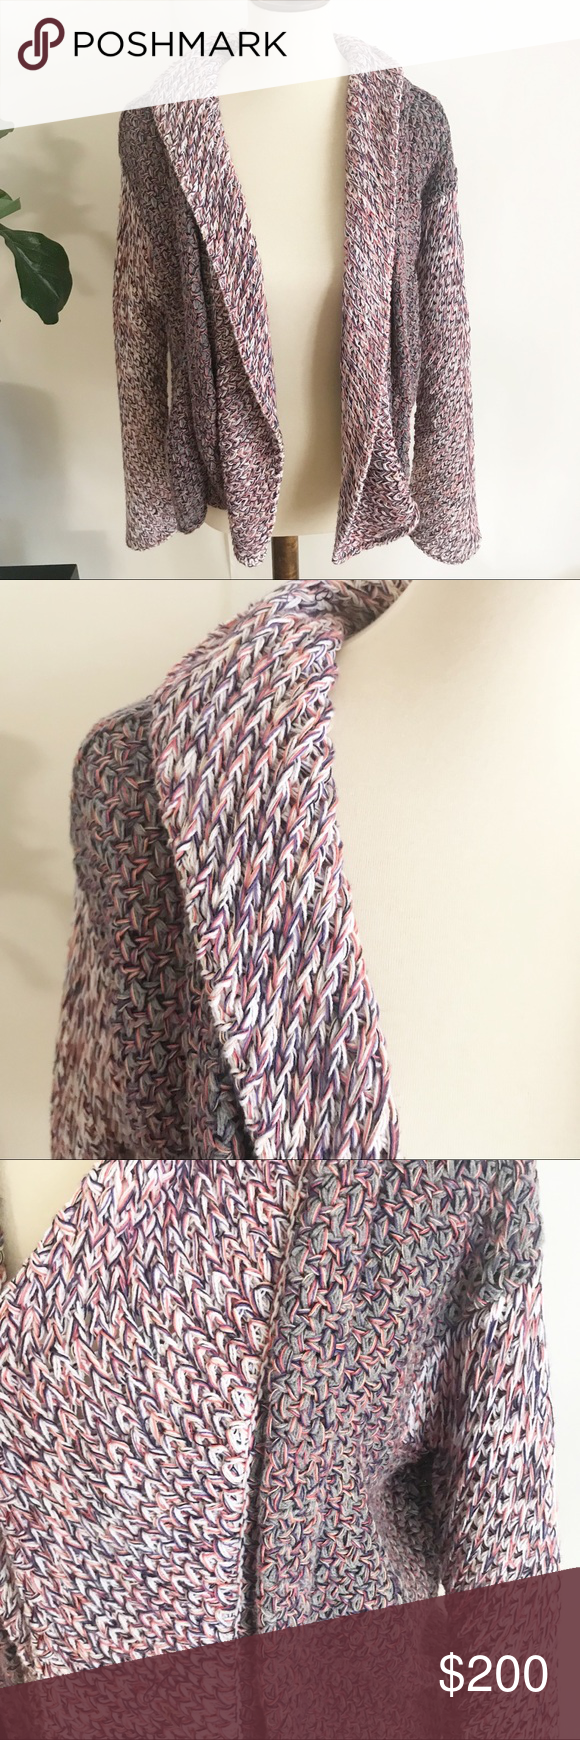 See by Chloe chunky sweater cardigan Rare See by Chloe Sweater cardigan shrug Multicolored yarn knitted-purple, blue, yellow, white, gray Sz 6      E-v66 See By Chloe Sweaters Cardigans #seebychloe